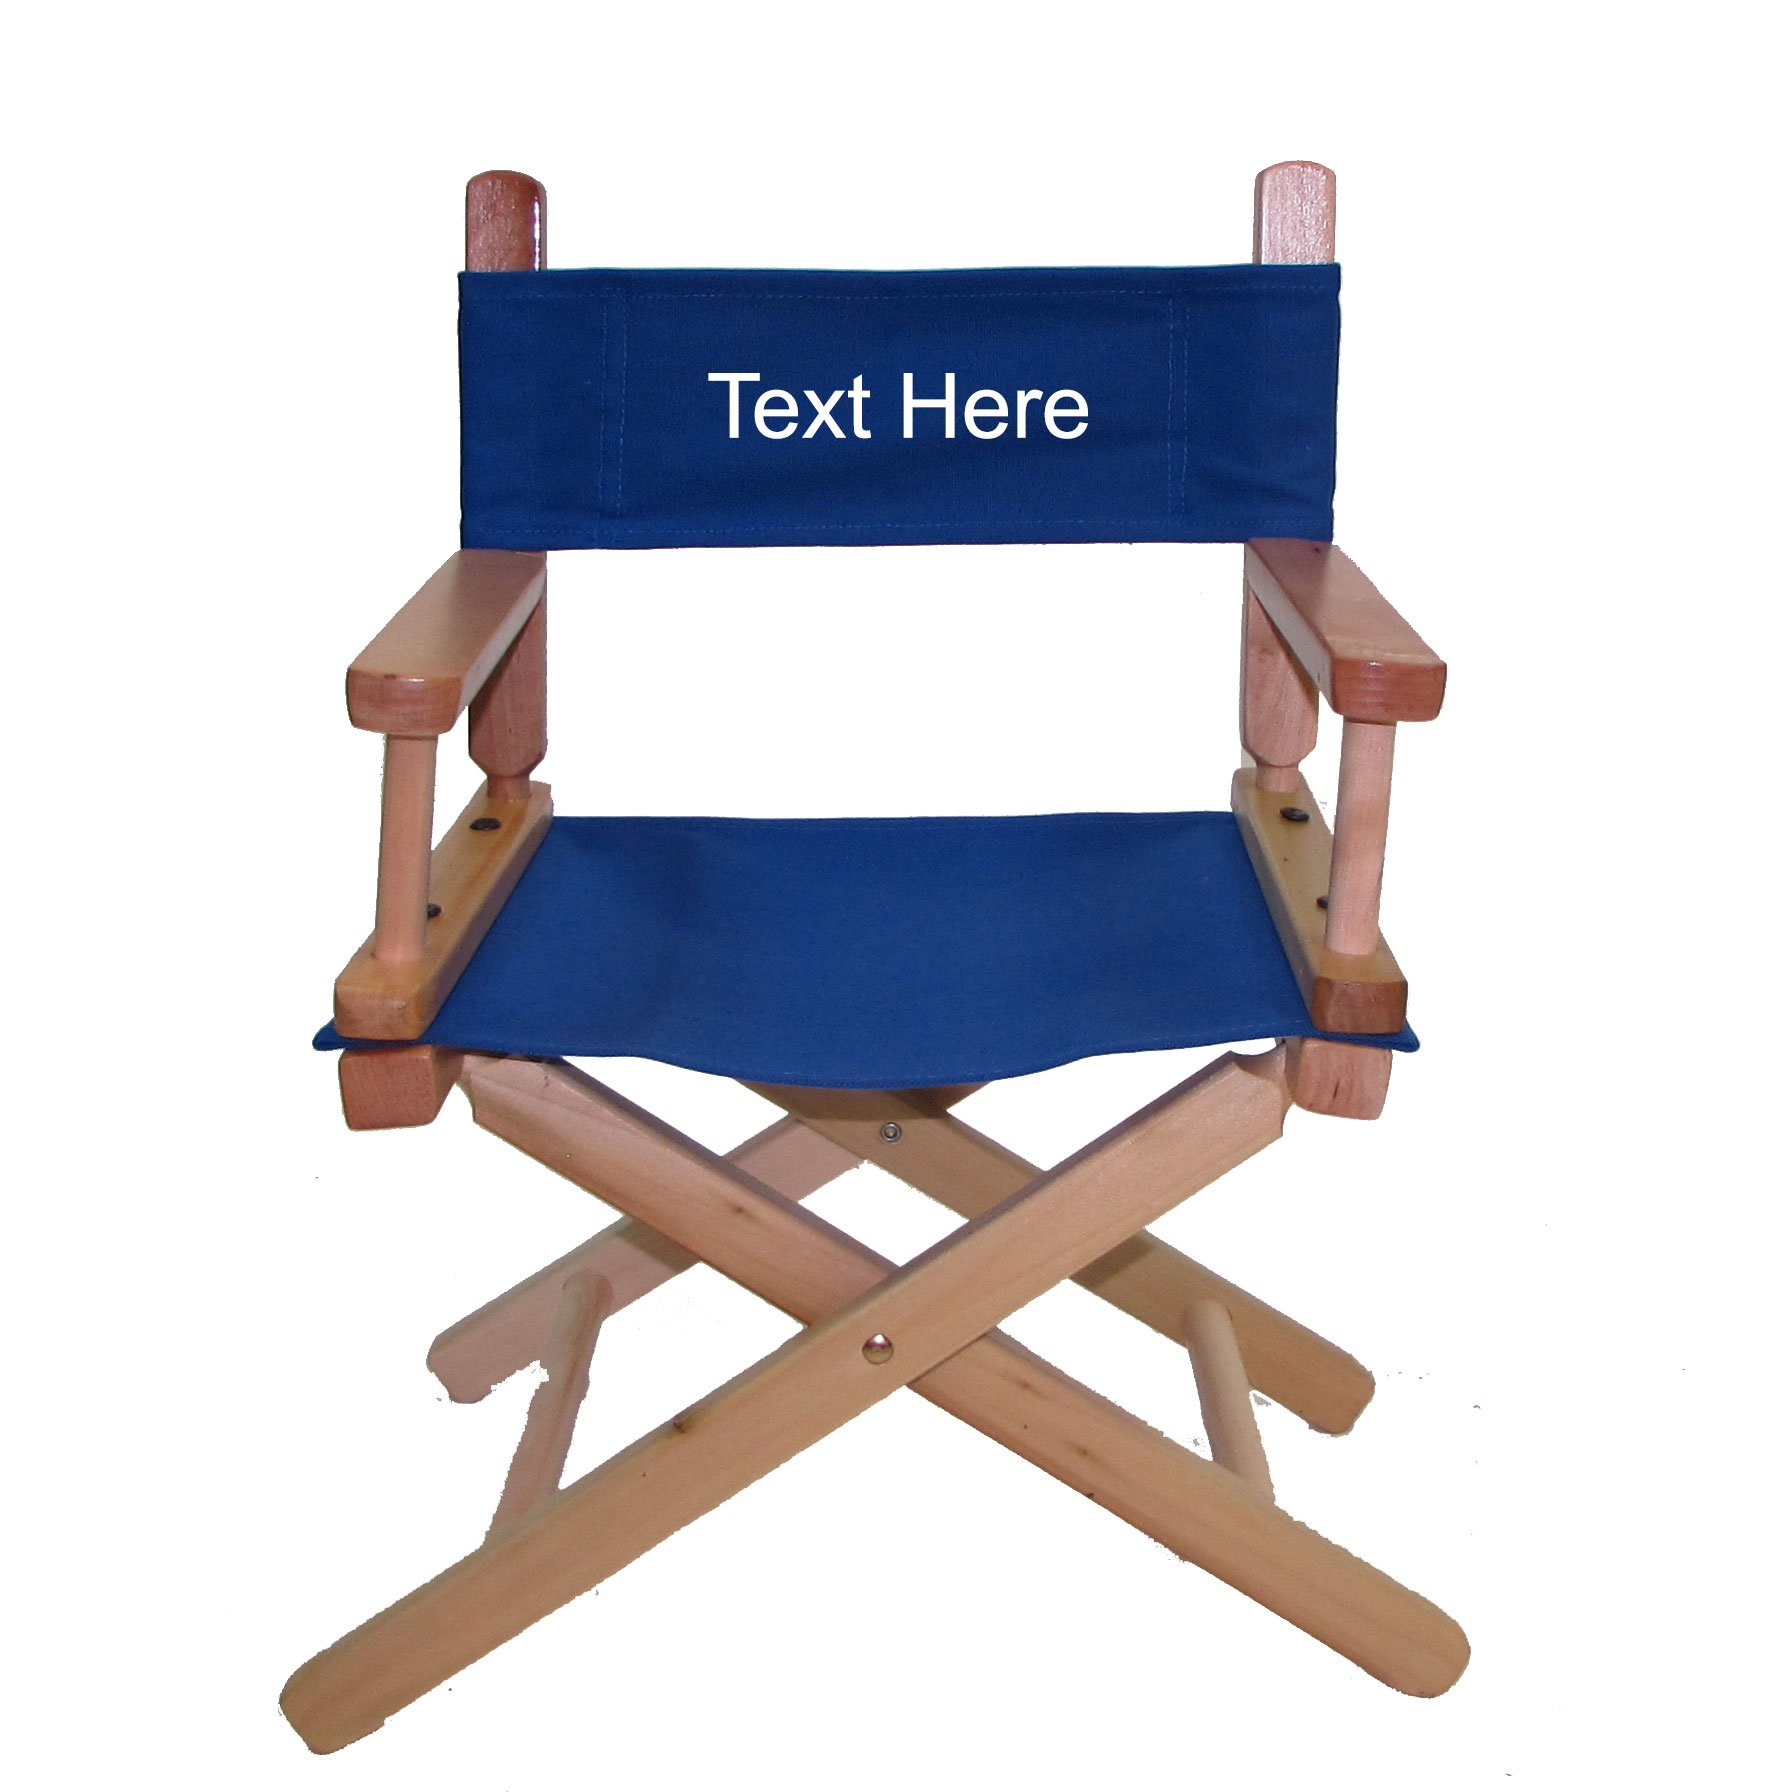 PERSONALIZED IMPRINTED Natural Frame Toddler's Directors Chair by Gold Medal - Royal Blue Canvas